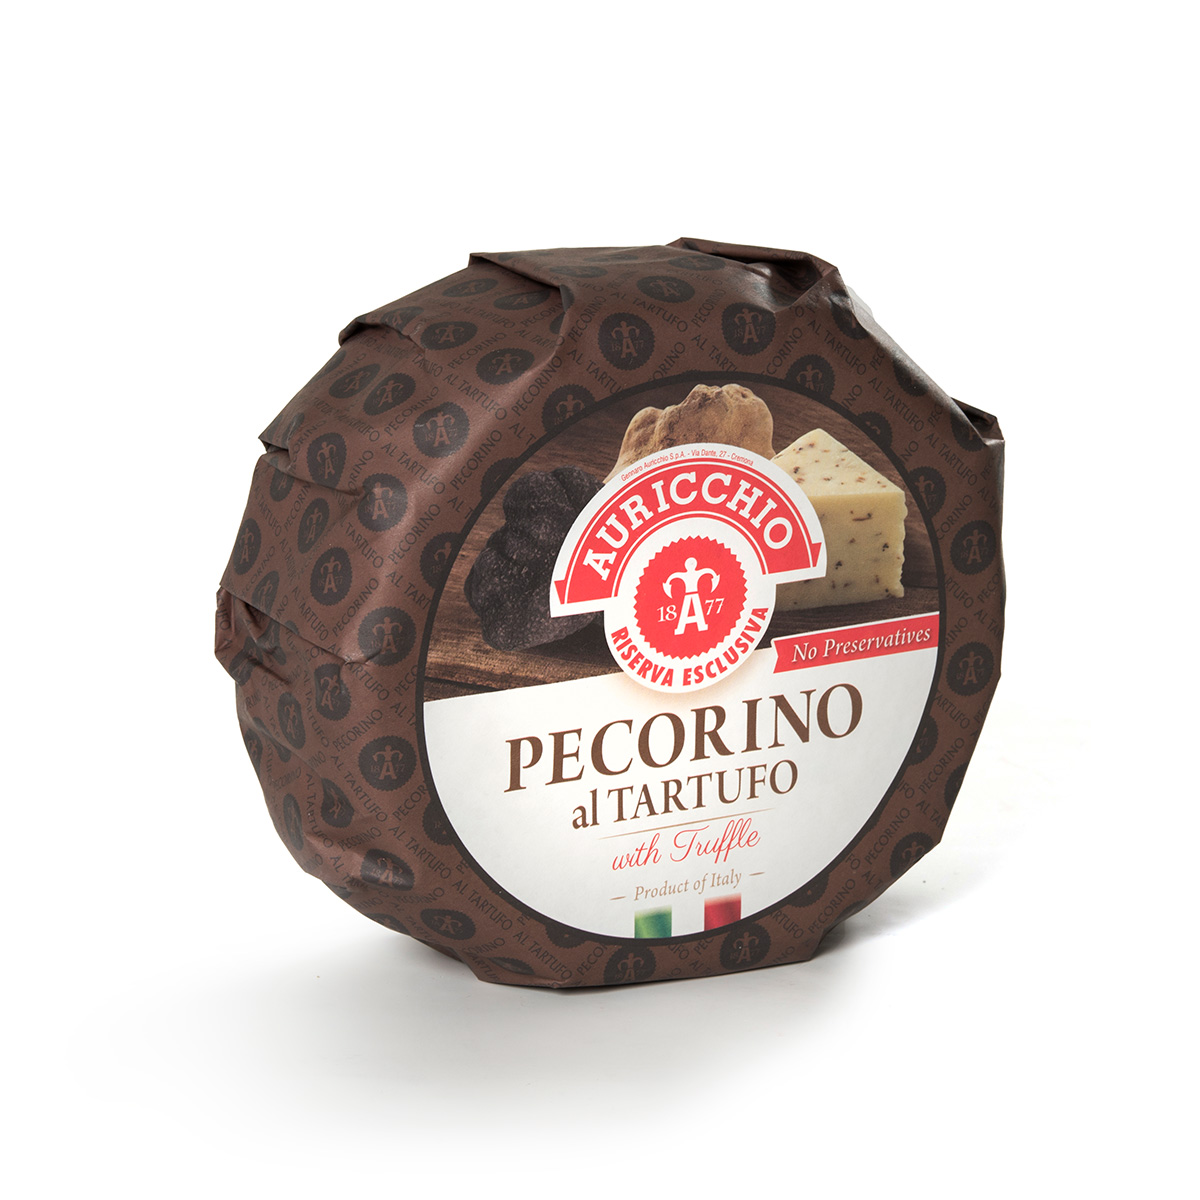 PECORINO With Truffle